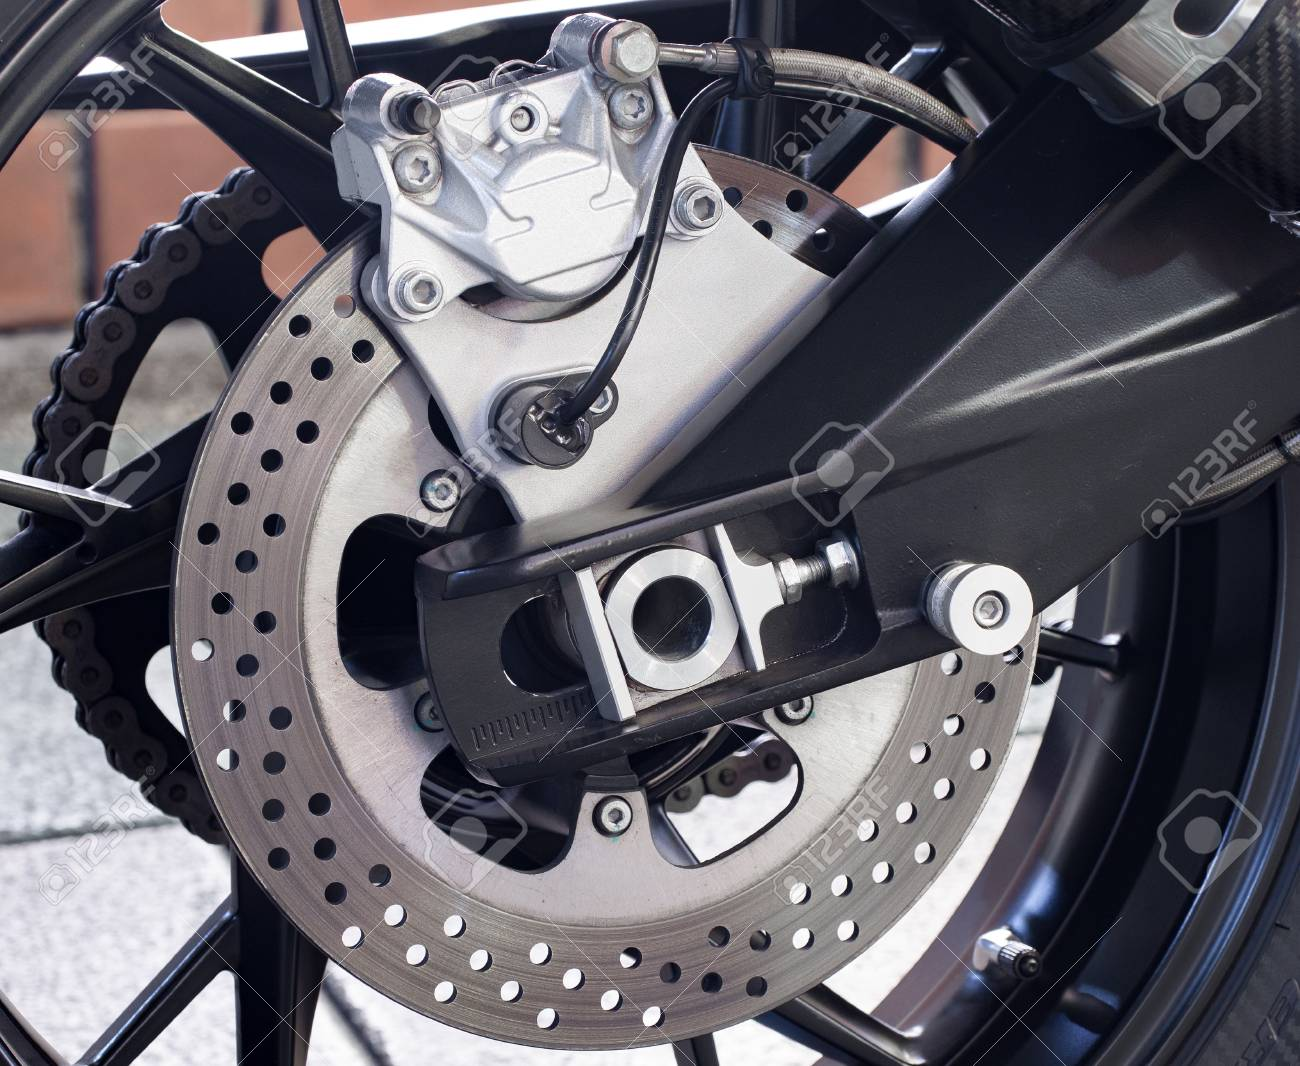 Close Up Shot On Disk Brake System On The Motorbike Or Big Bike Stock Photo Picture And Royalty Free Image Image 55517989